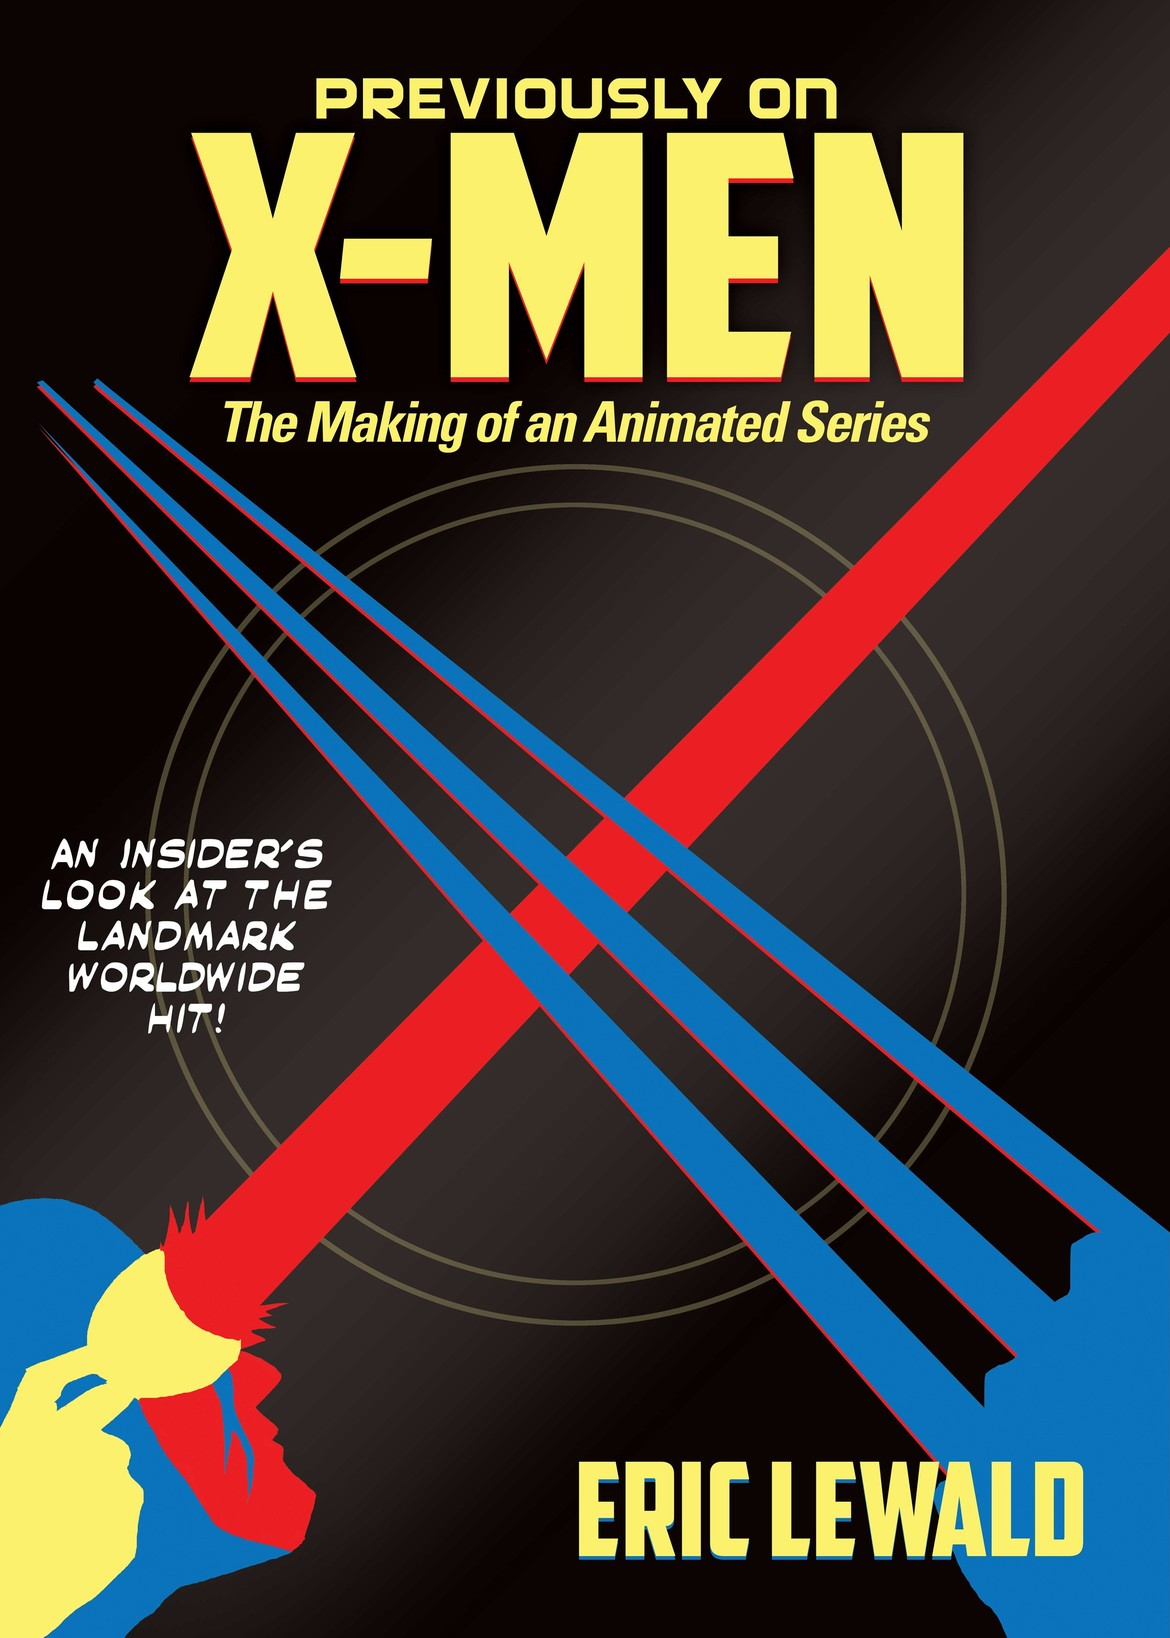 previously on x-men, x-men: the animated series